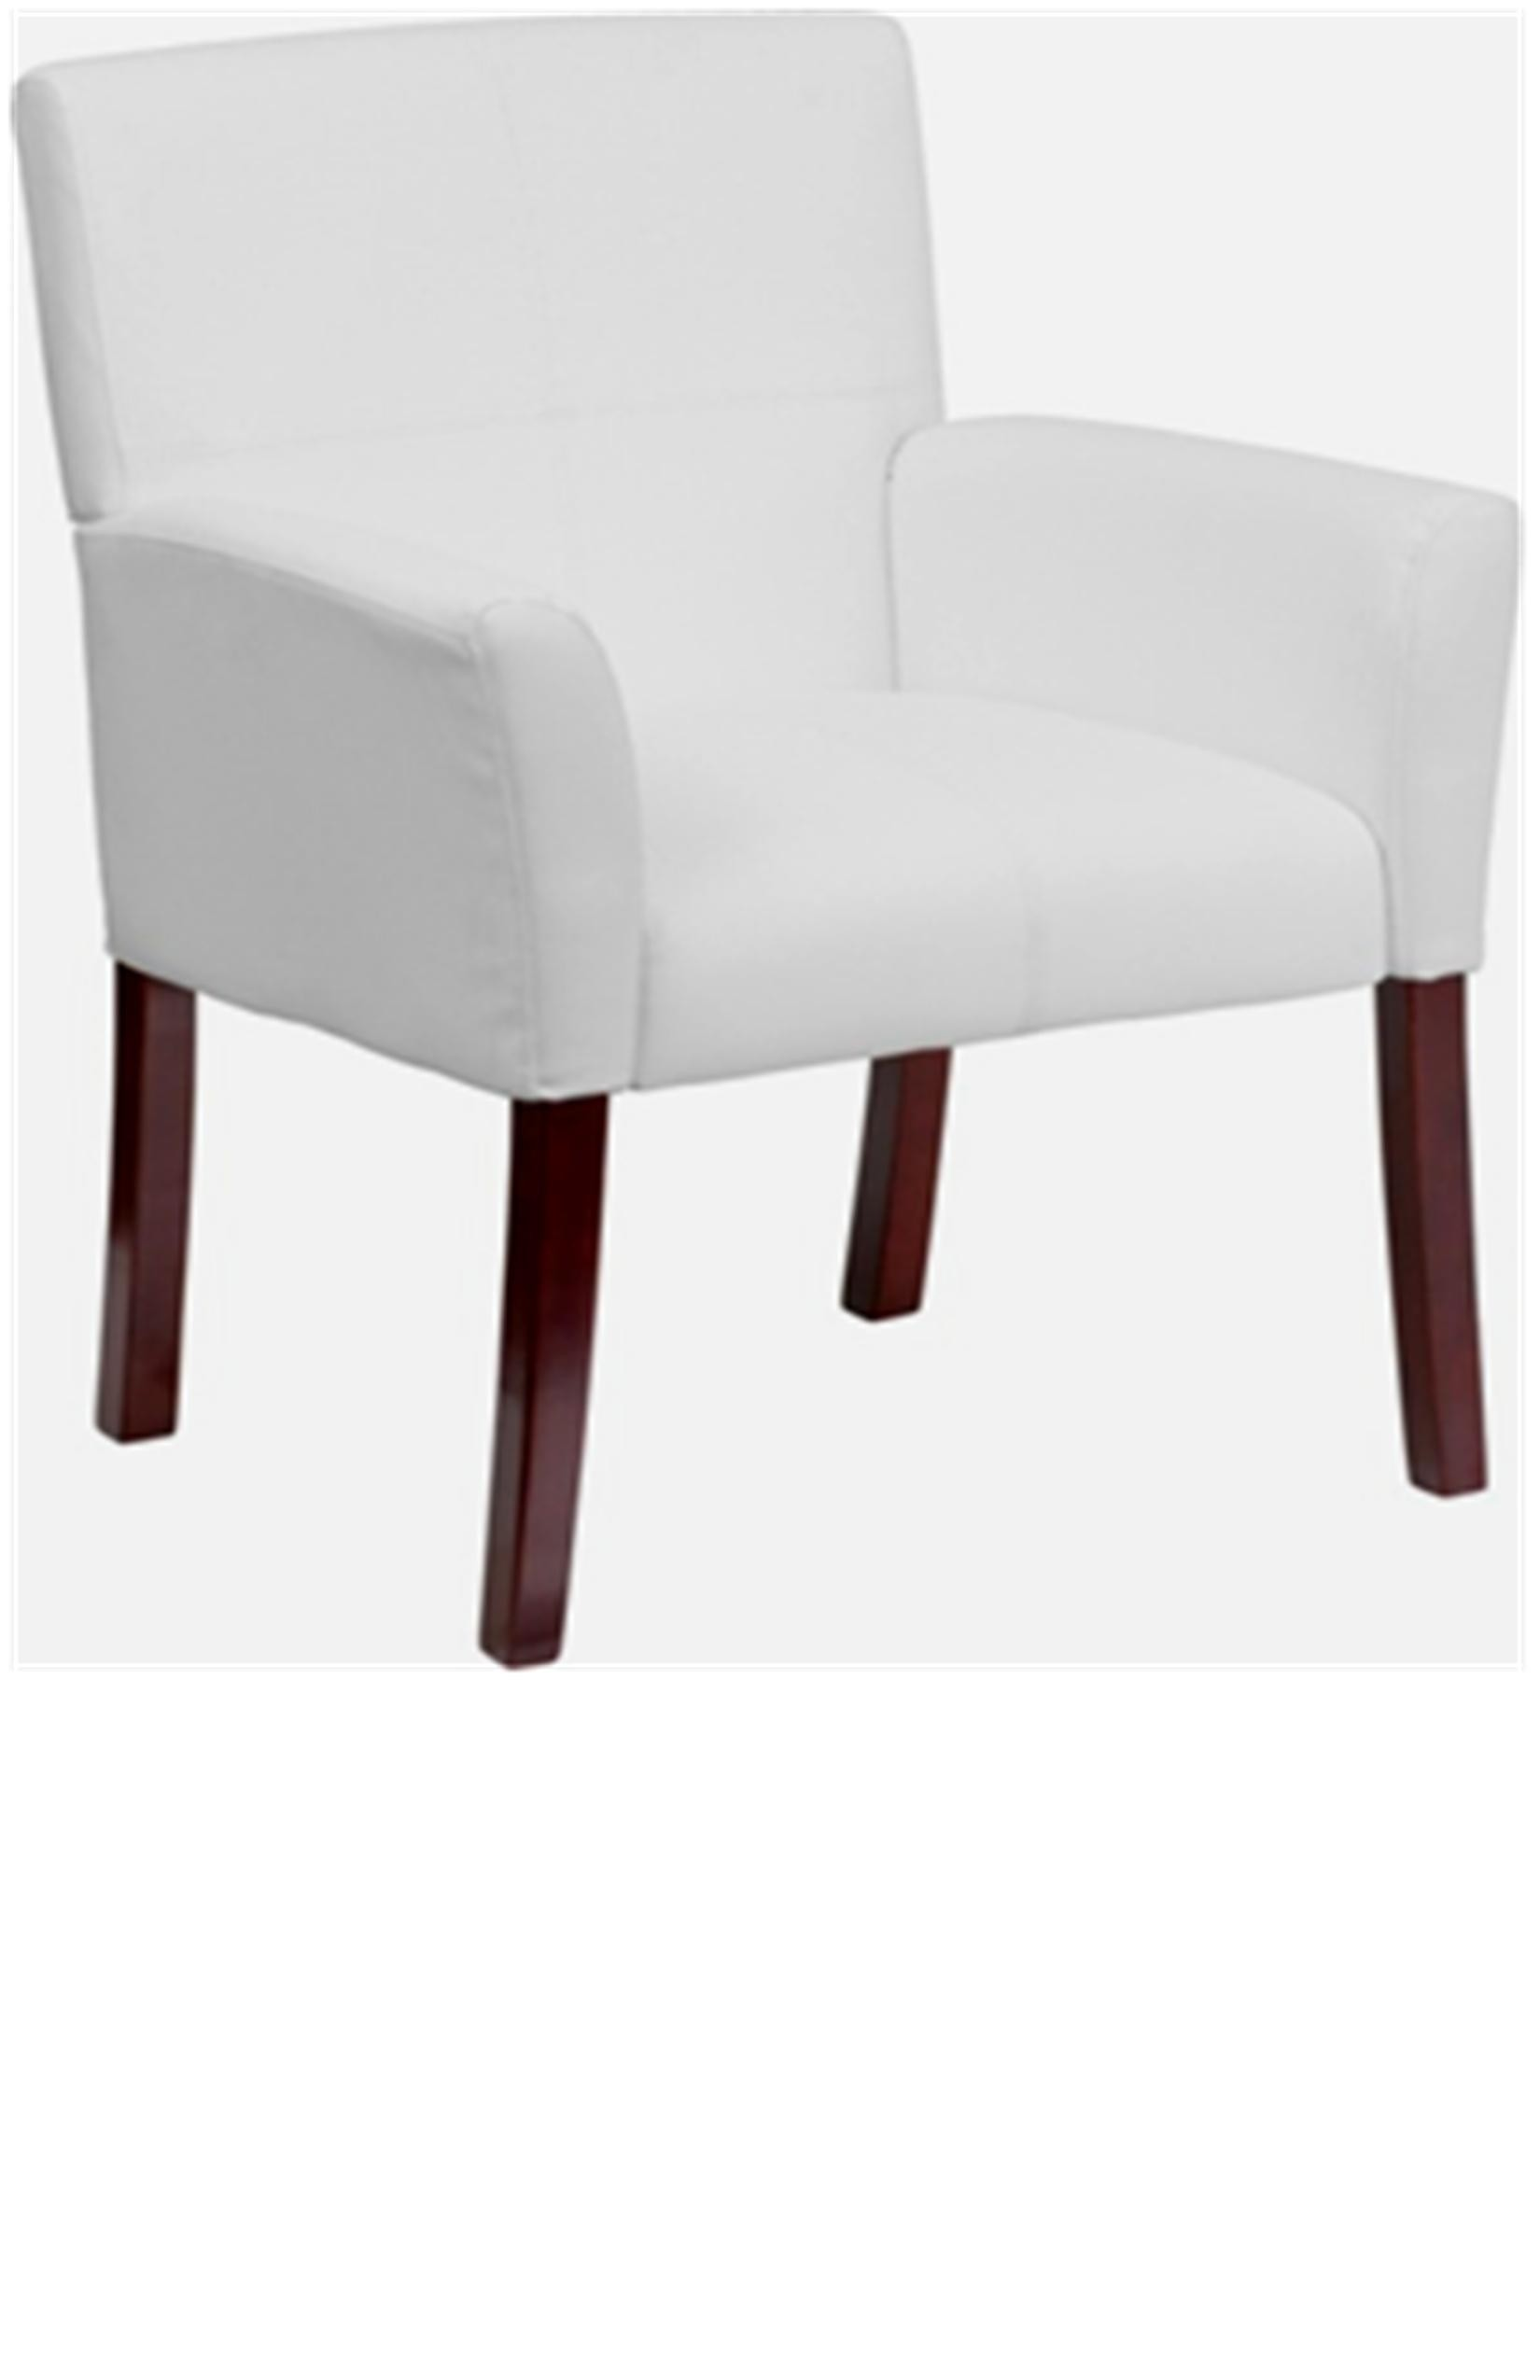 White Leather Executive Side Chair with Mahogany Legs - C77